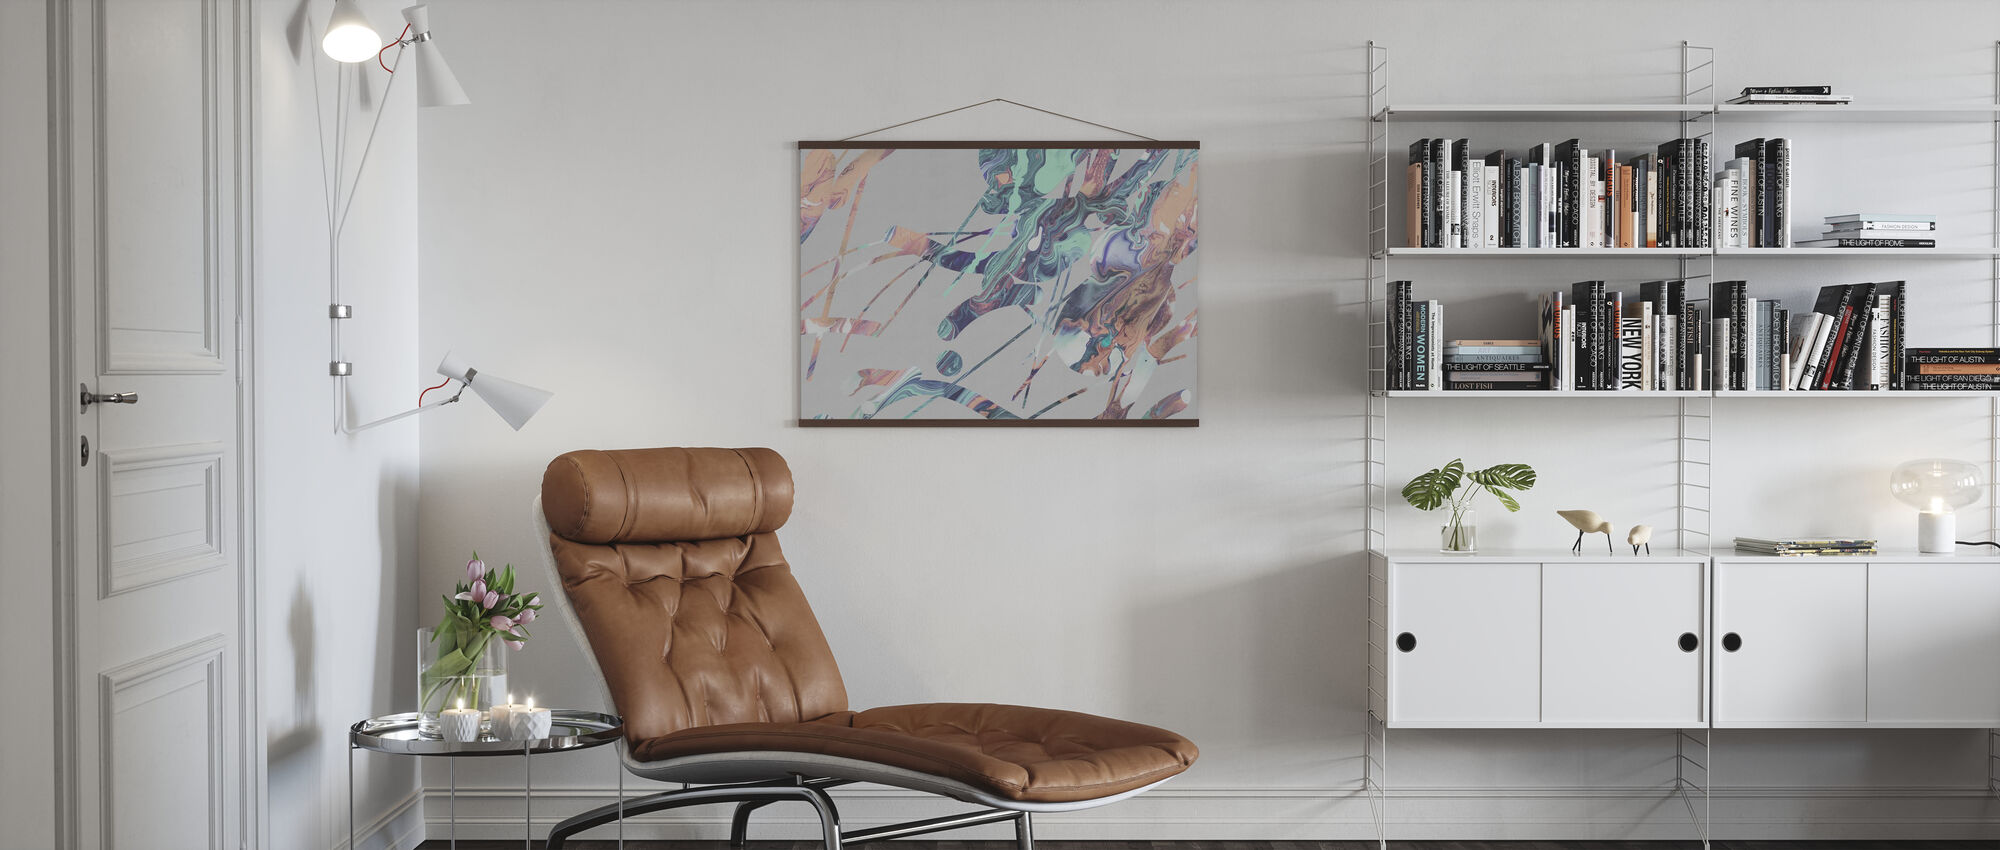 Acrylic Passion - Silver - Poster - Living Room